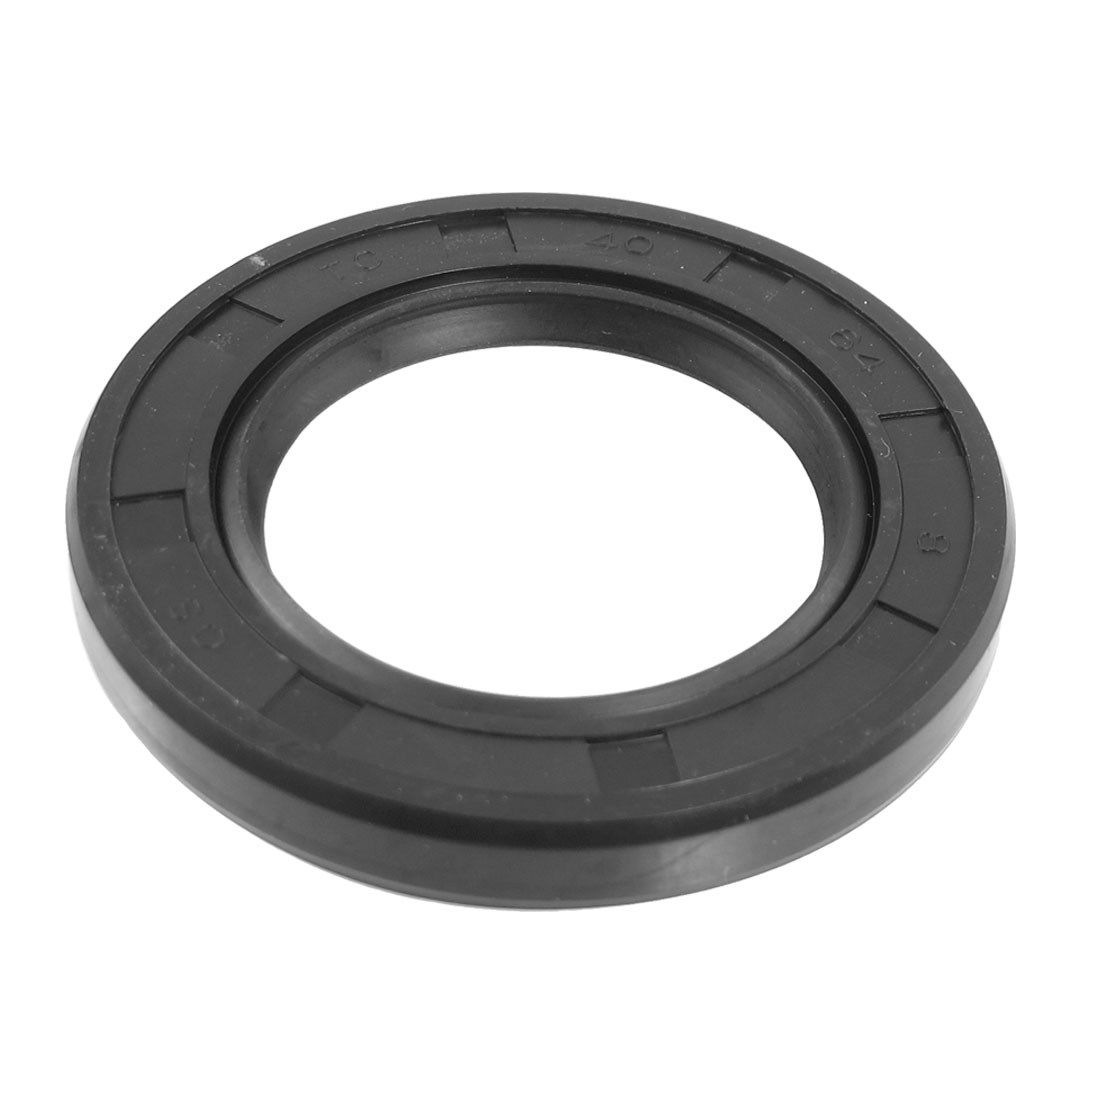 40mm x 64mm x 8mm Metric Double Lipped Rotary Shaft Oil Seal TC